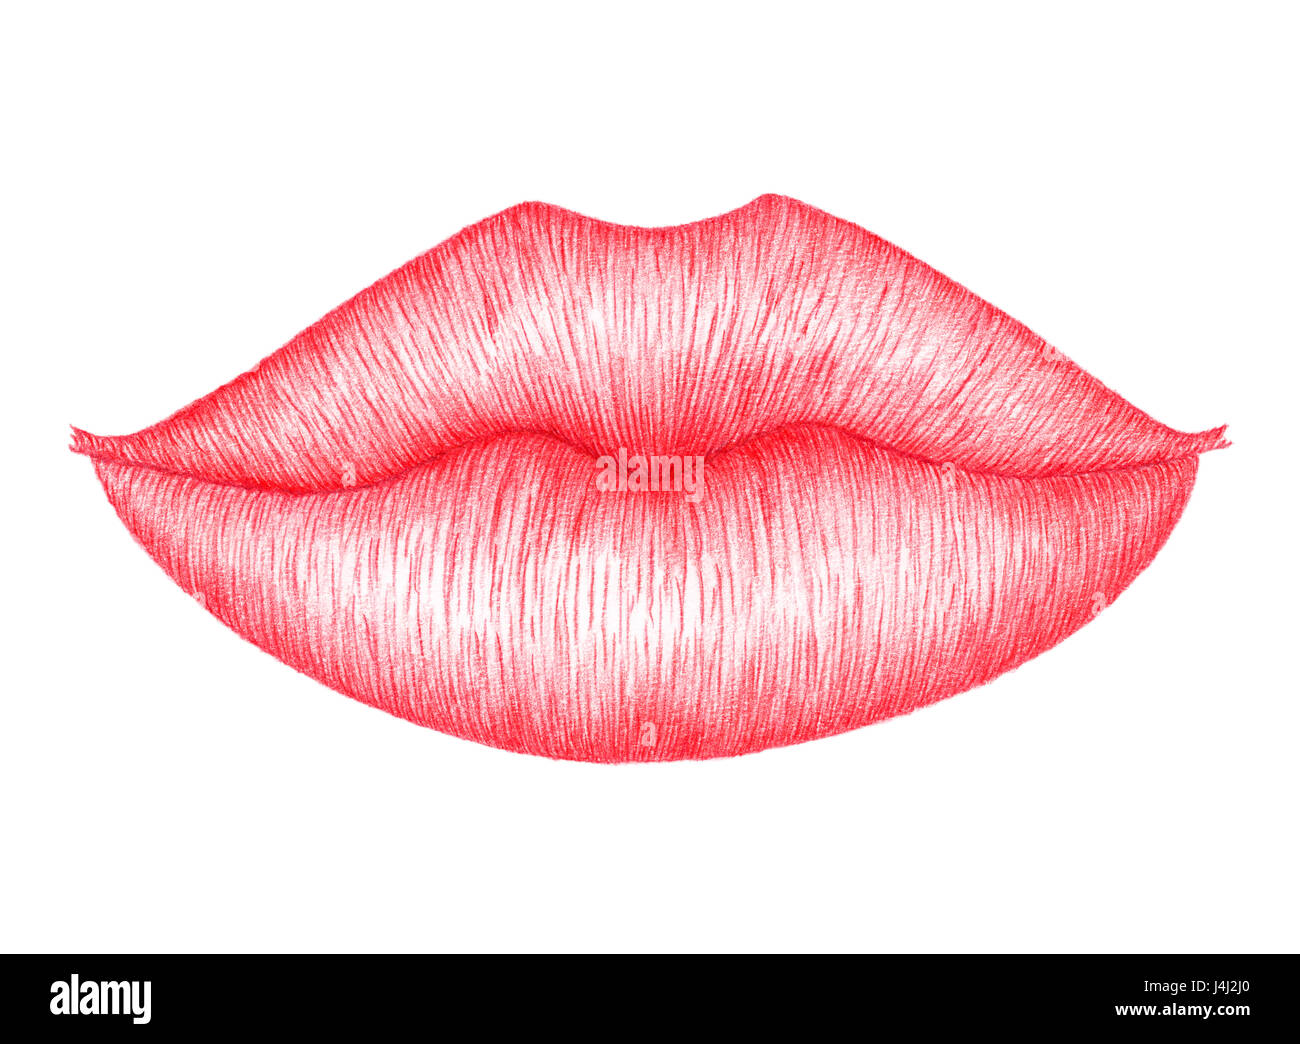 Red lips over white background. Colored pencils on paper. - Stock Image